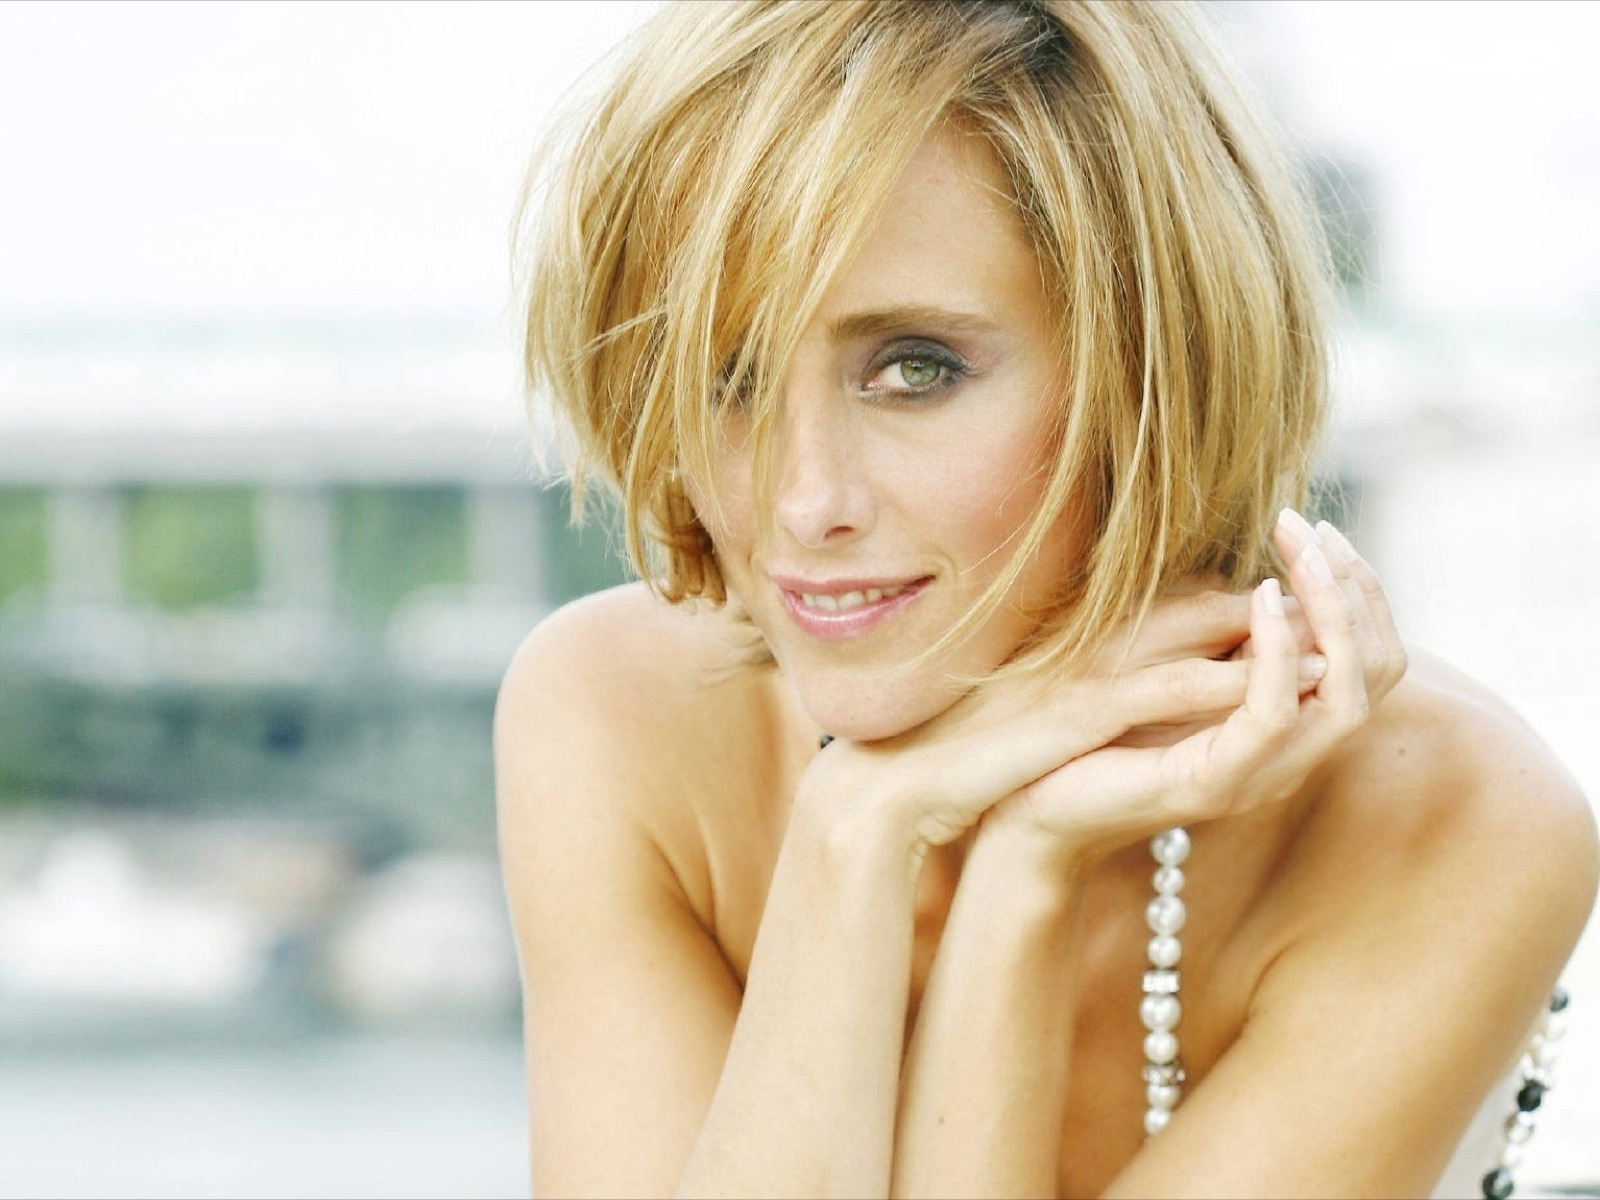 Kim Raver 0036 1600x1200 Wallpaper Sexy wife naked free milf blog There is nothing hotter than a sexy business ...